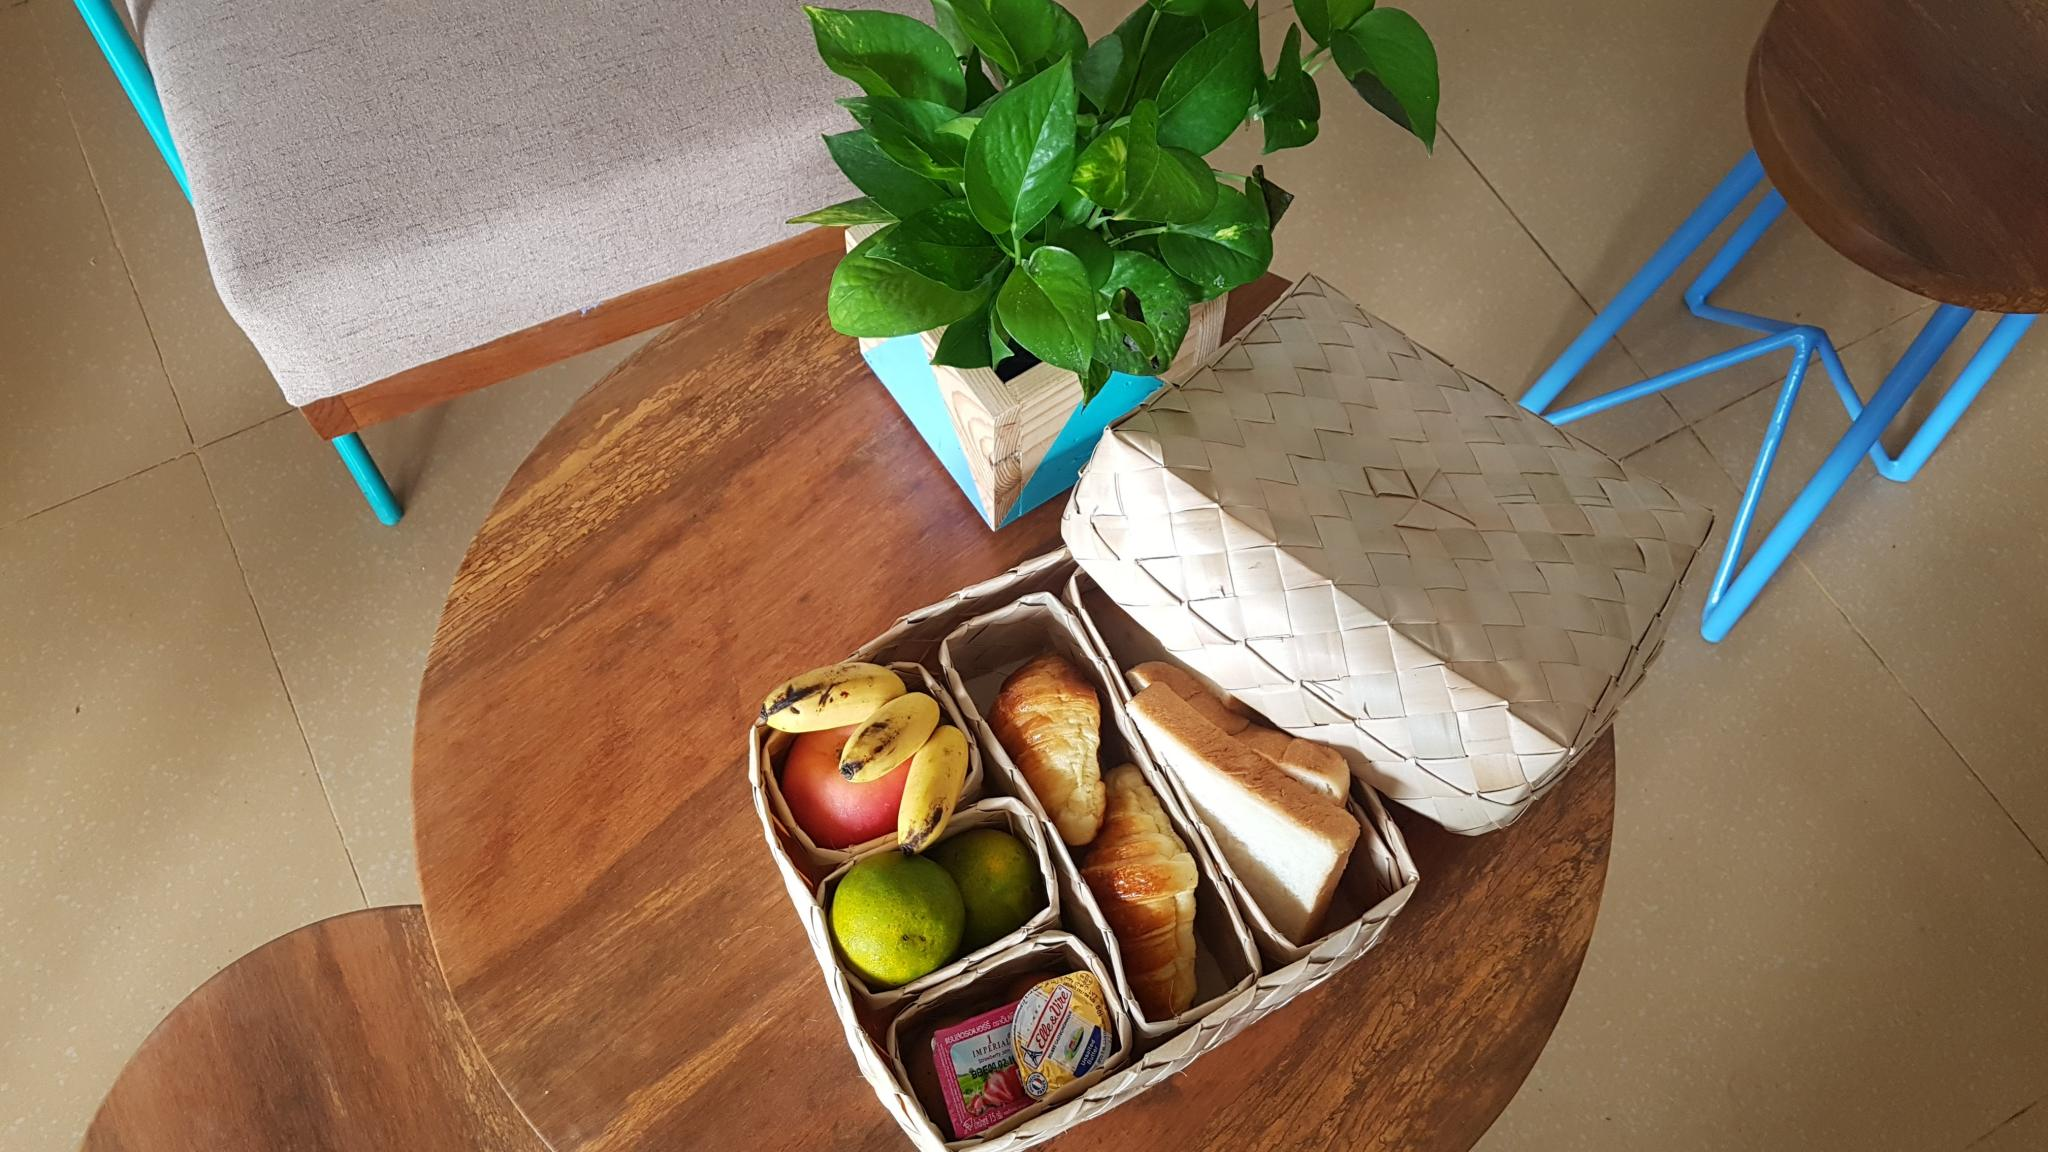 Reusable, locally made handwoven breakfast boxes at Baby Elephant Boutique Hotel as part of our Go Green! sustainability and eco-friendly initiatives in Siem Reap, Cambodia